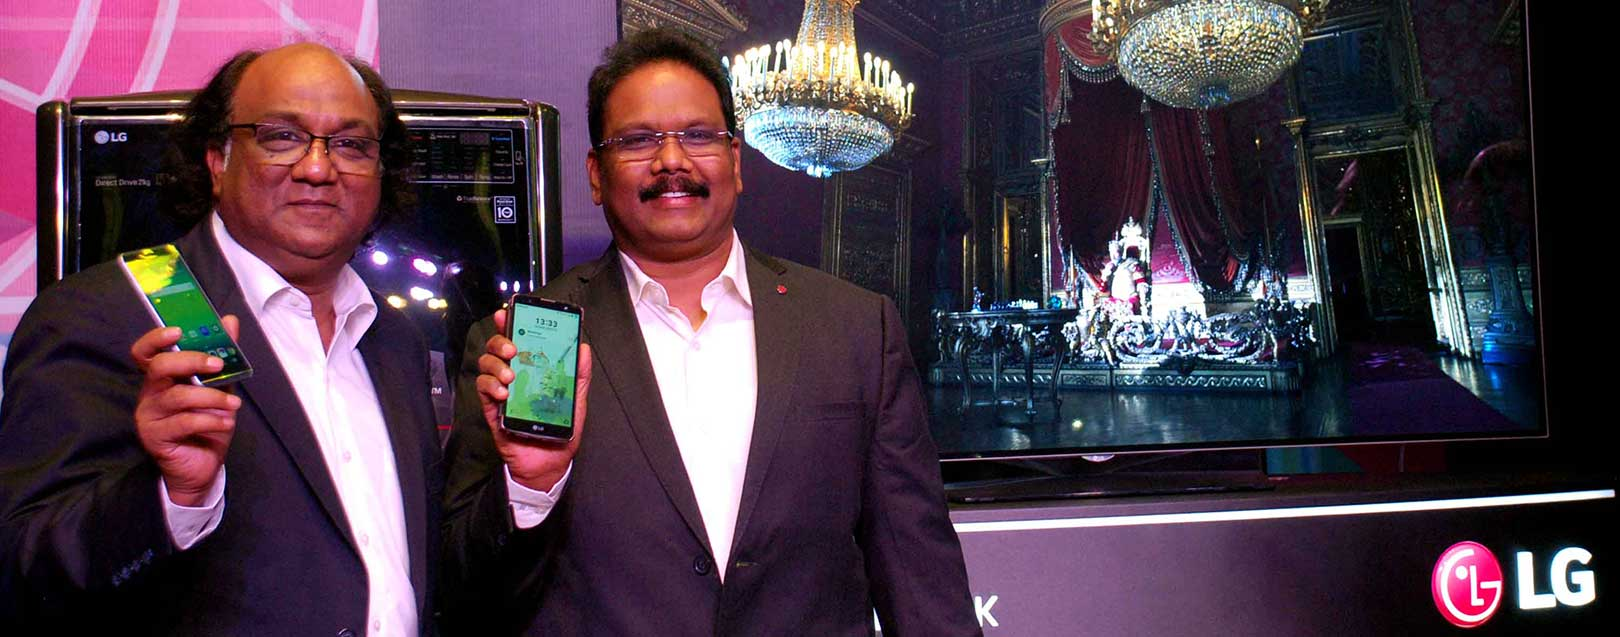 Innovative technology drives LG's growth in India